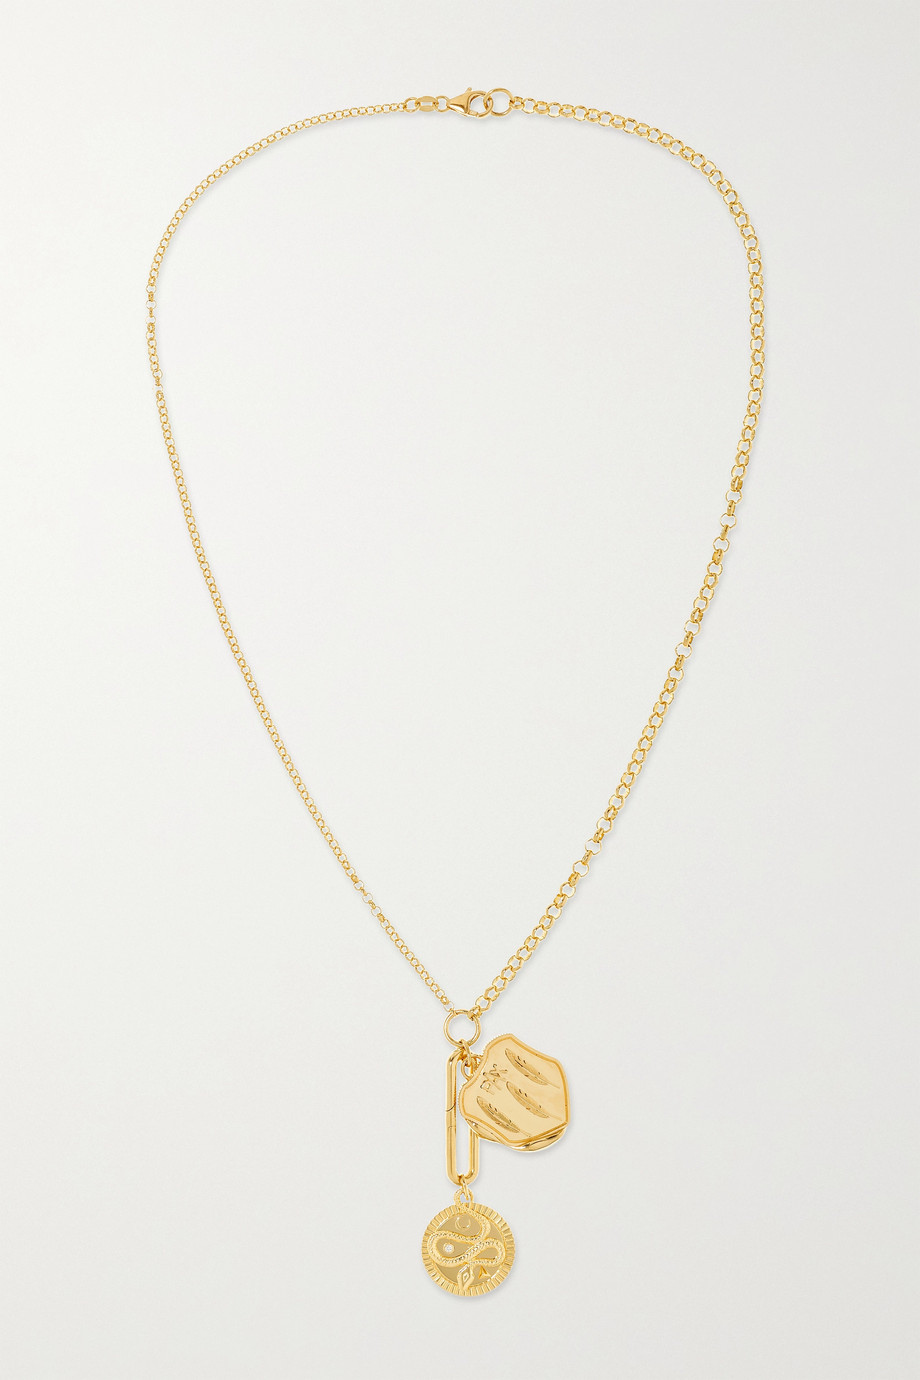 Foundrae Wholeness and Pax 18-karat gold diamond necklace